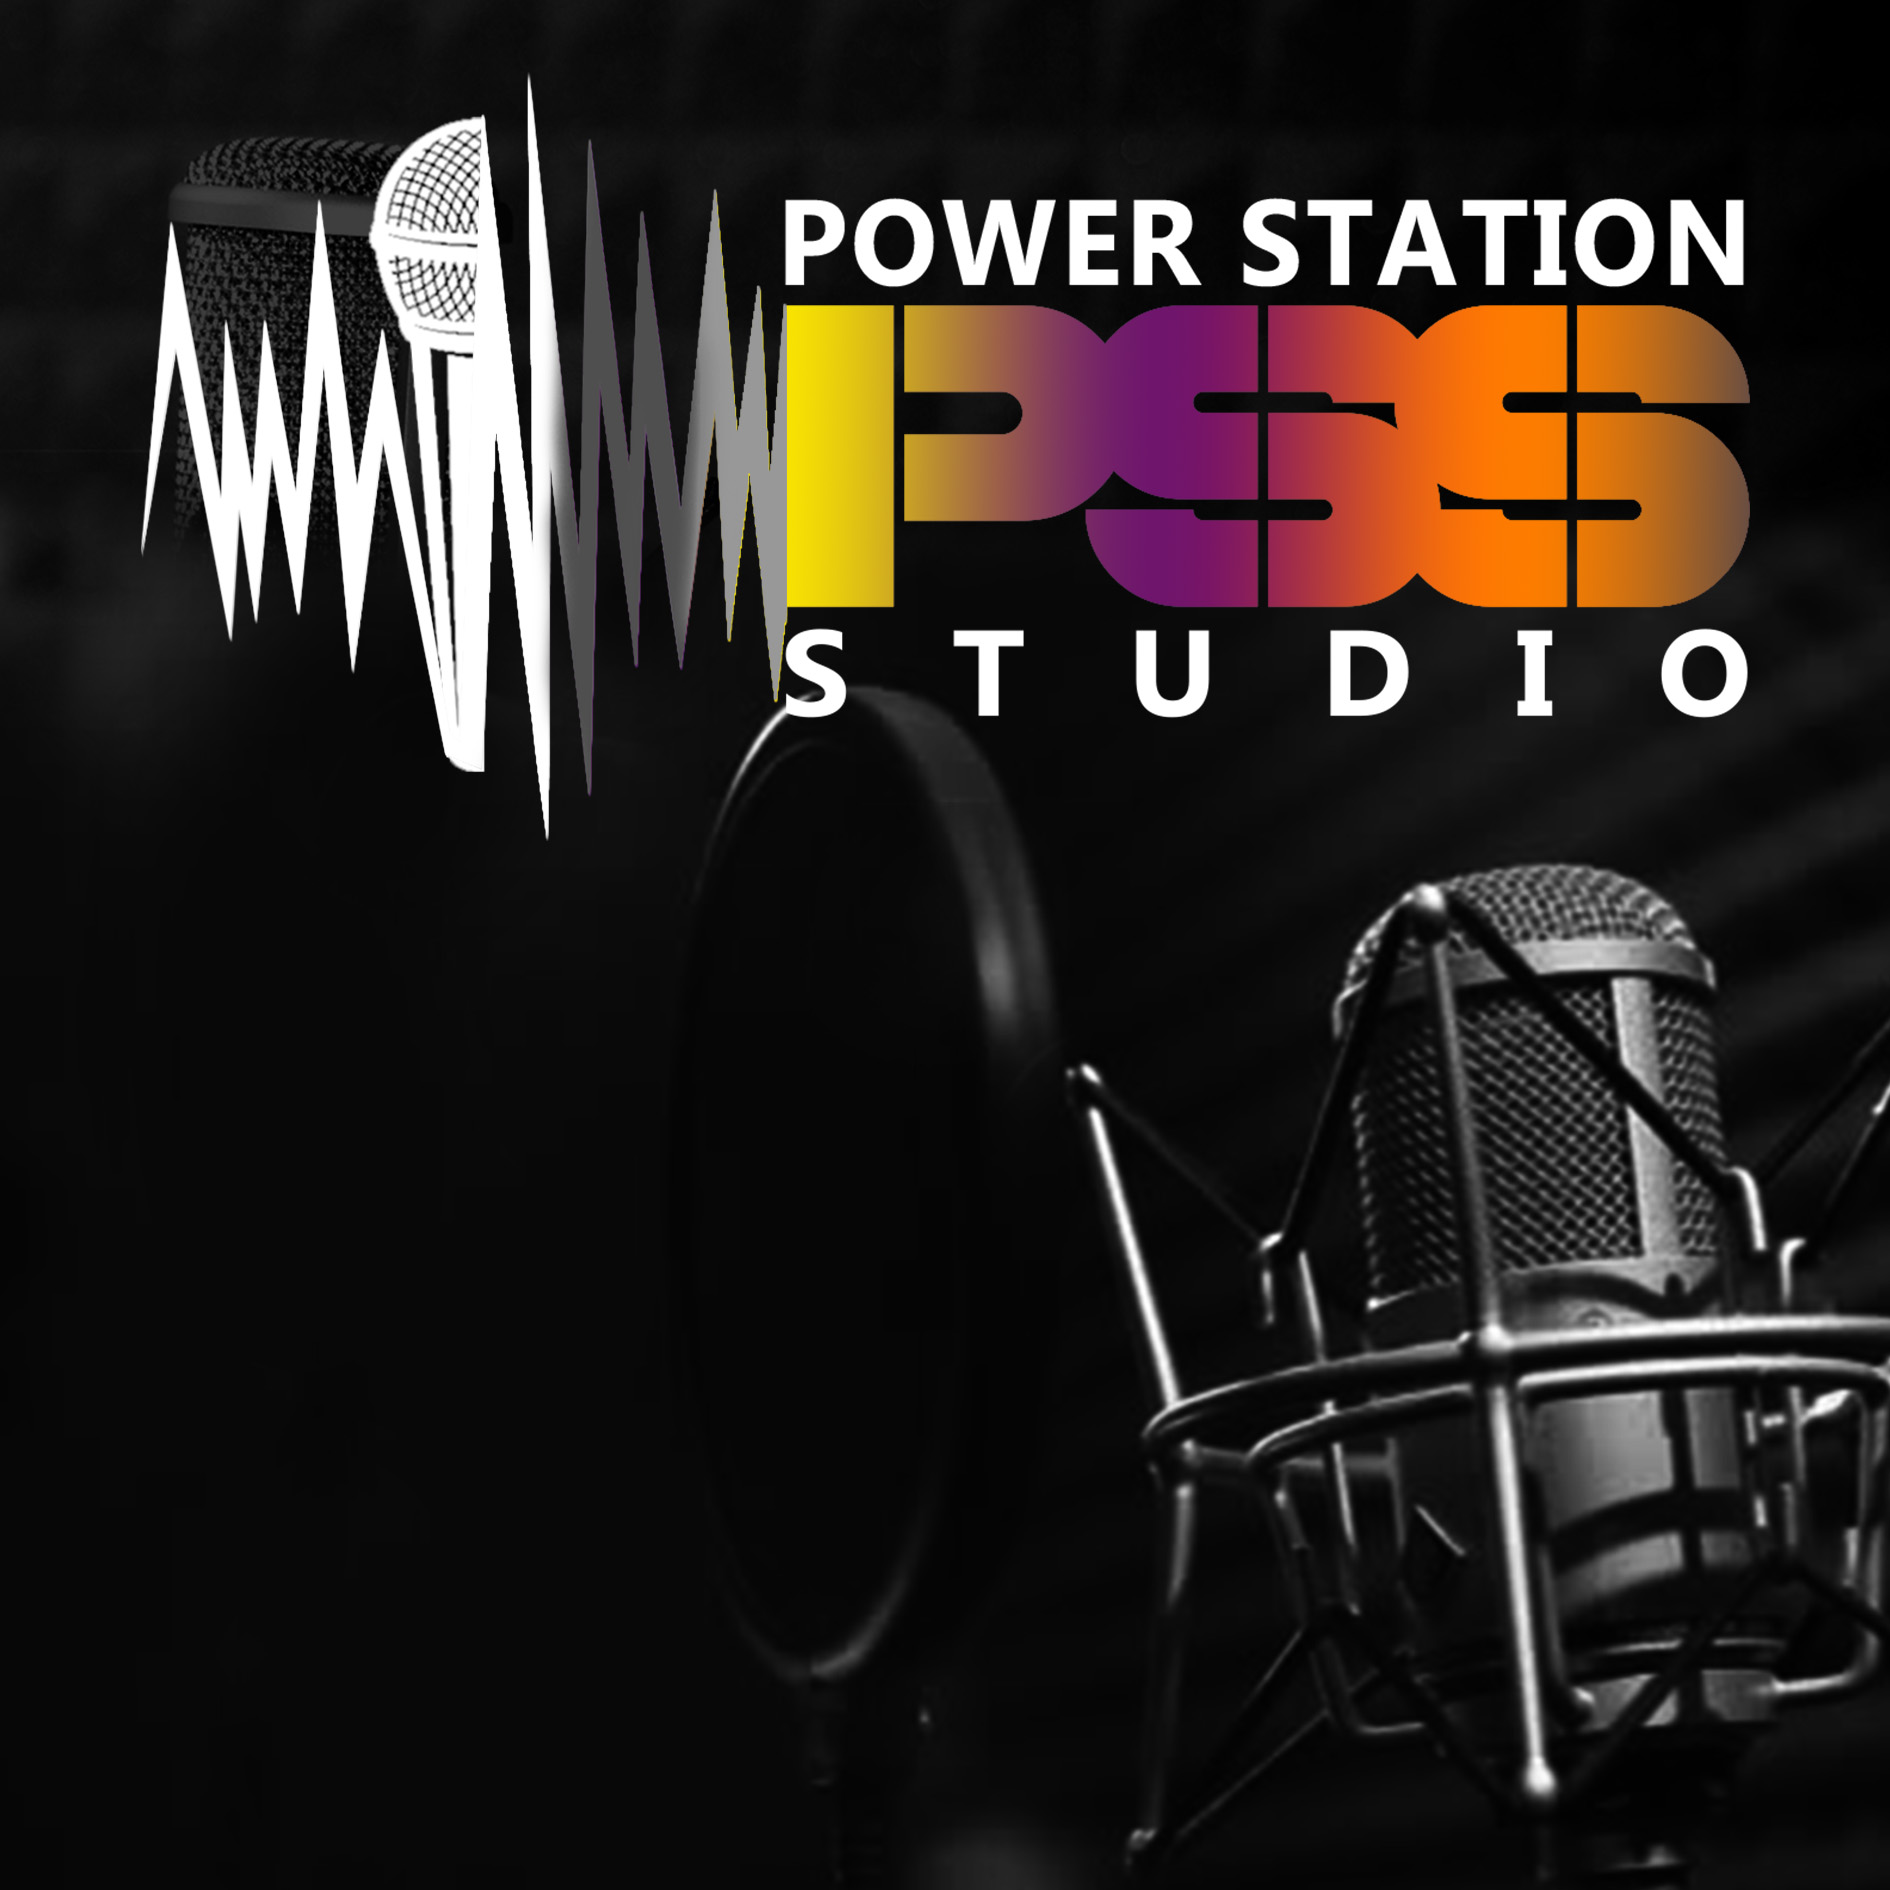 Power Station Studio